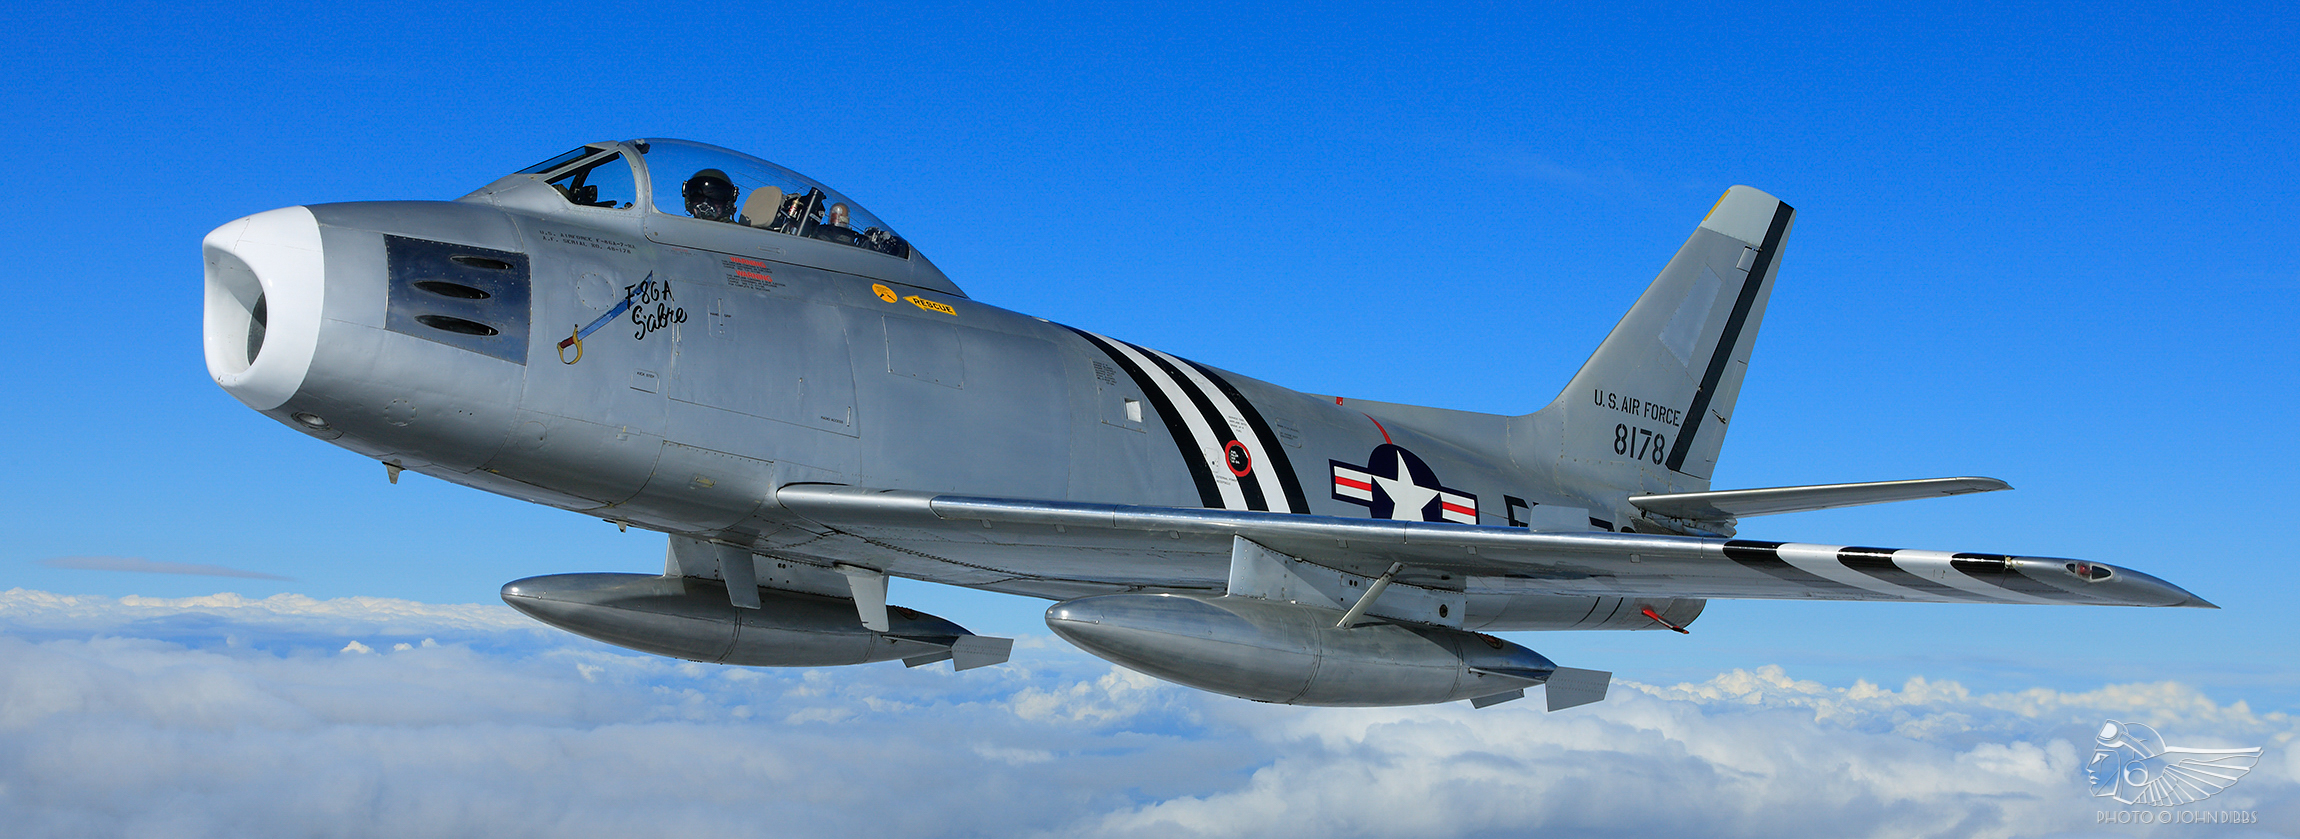 F-86A Sabre: The Test Pilot's Perspective